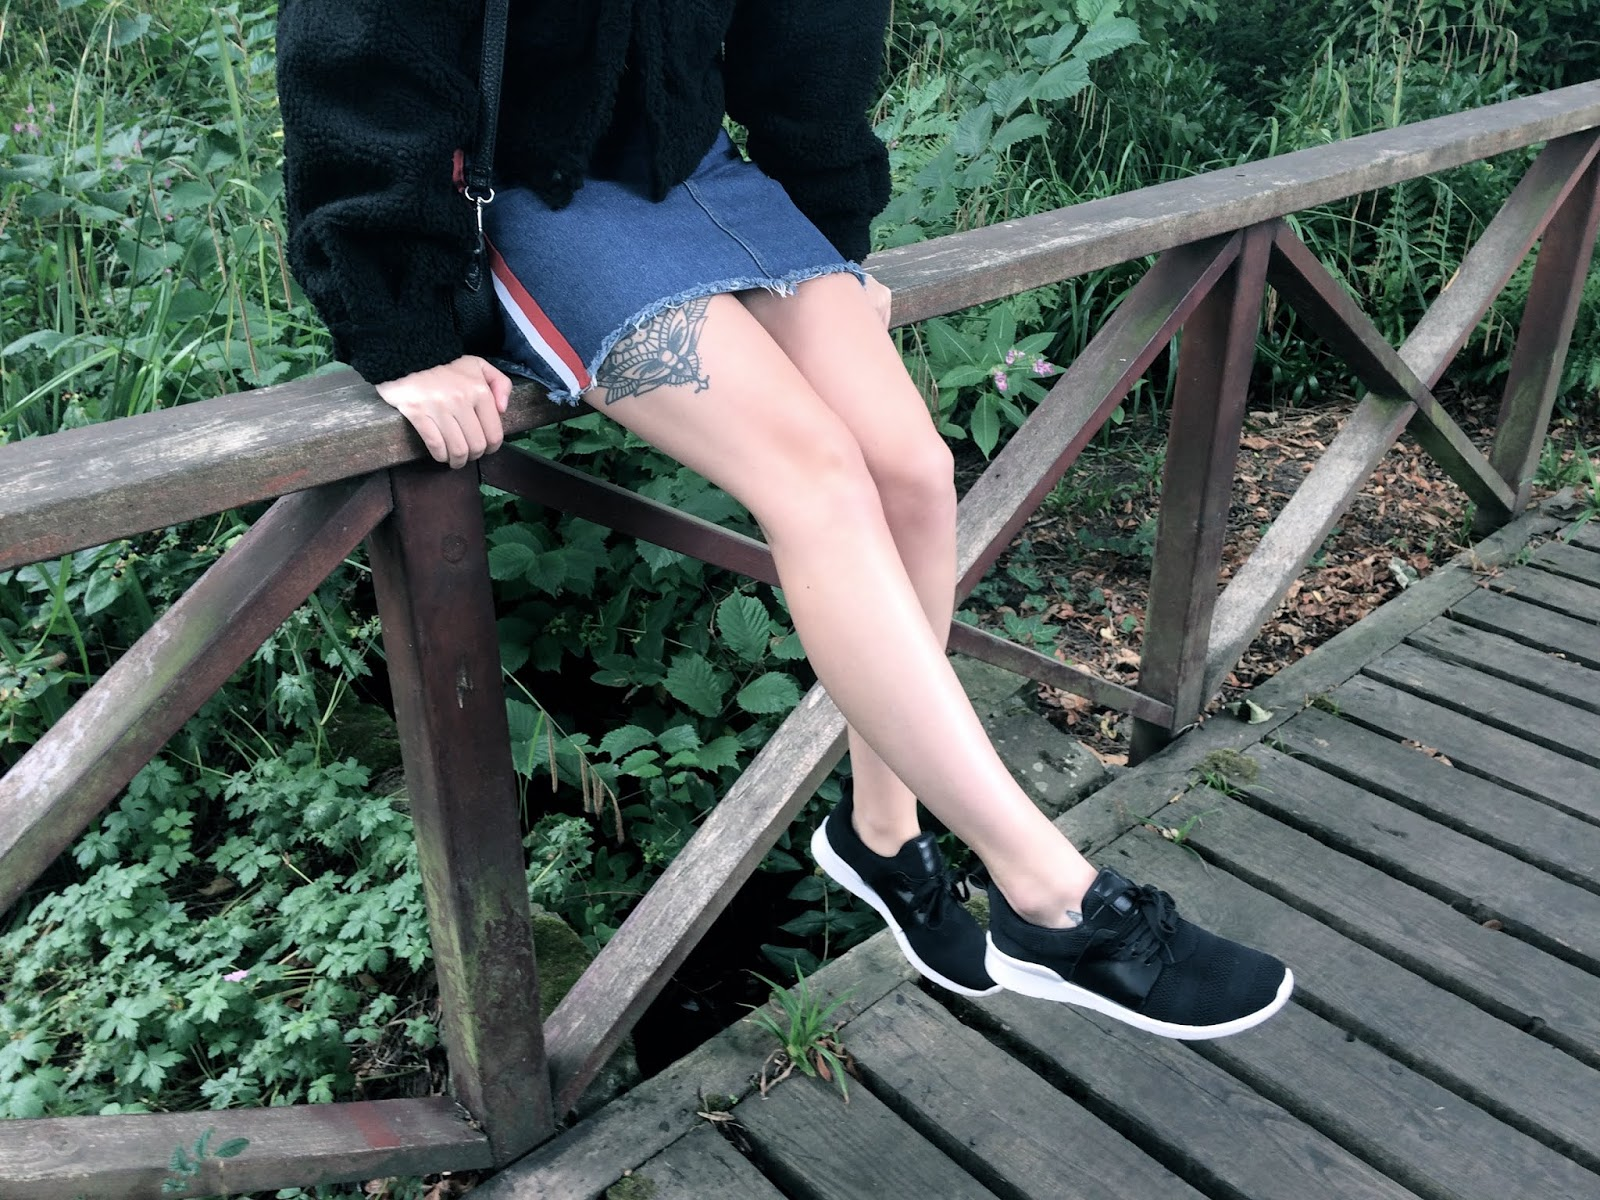 Denim skirt and black trainer combo, girl sitting on side of a bridge